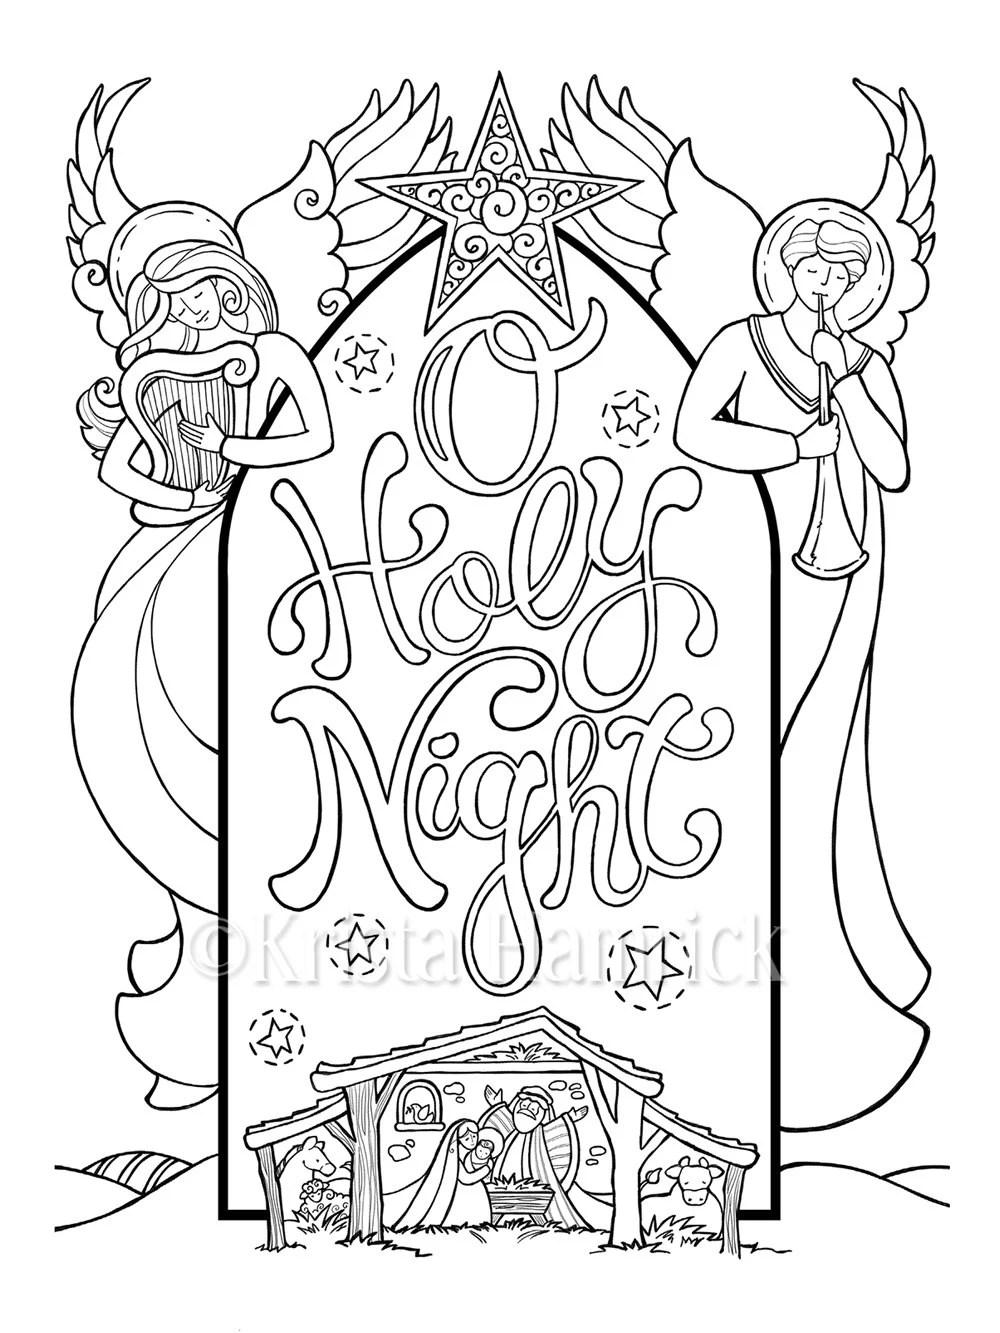 O Holy Night Nativity scene coloring page in two sizes: